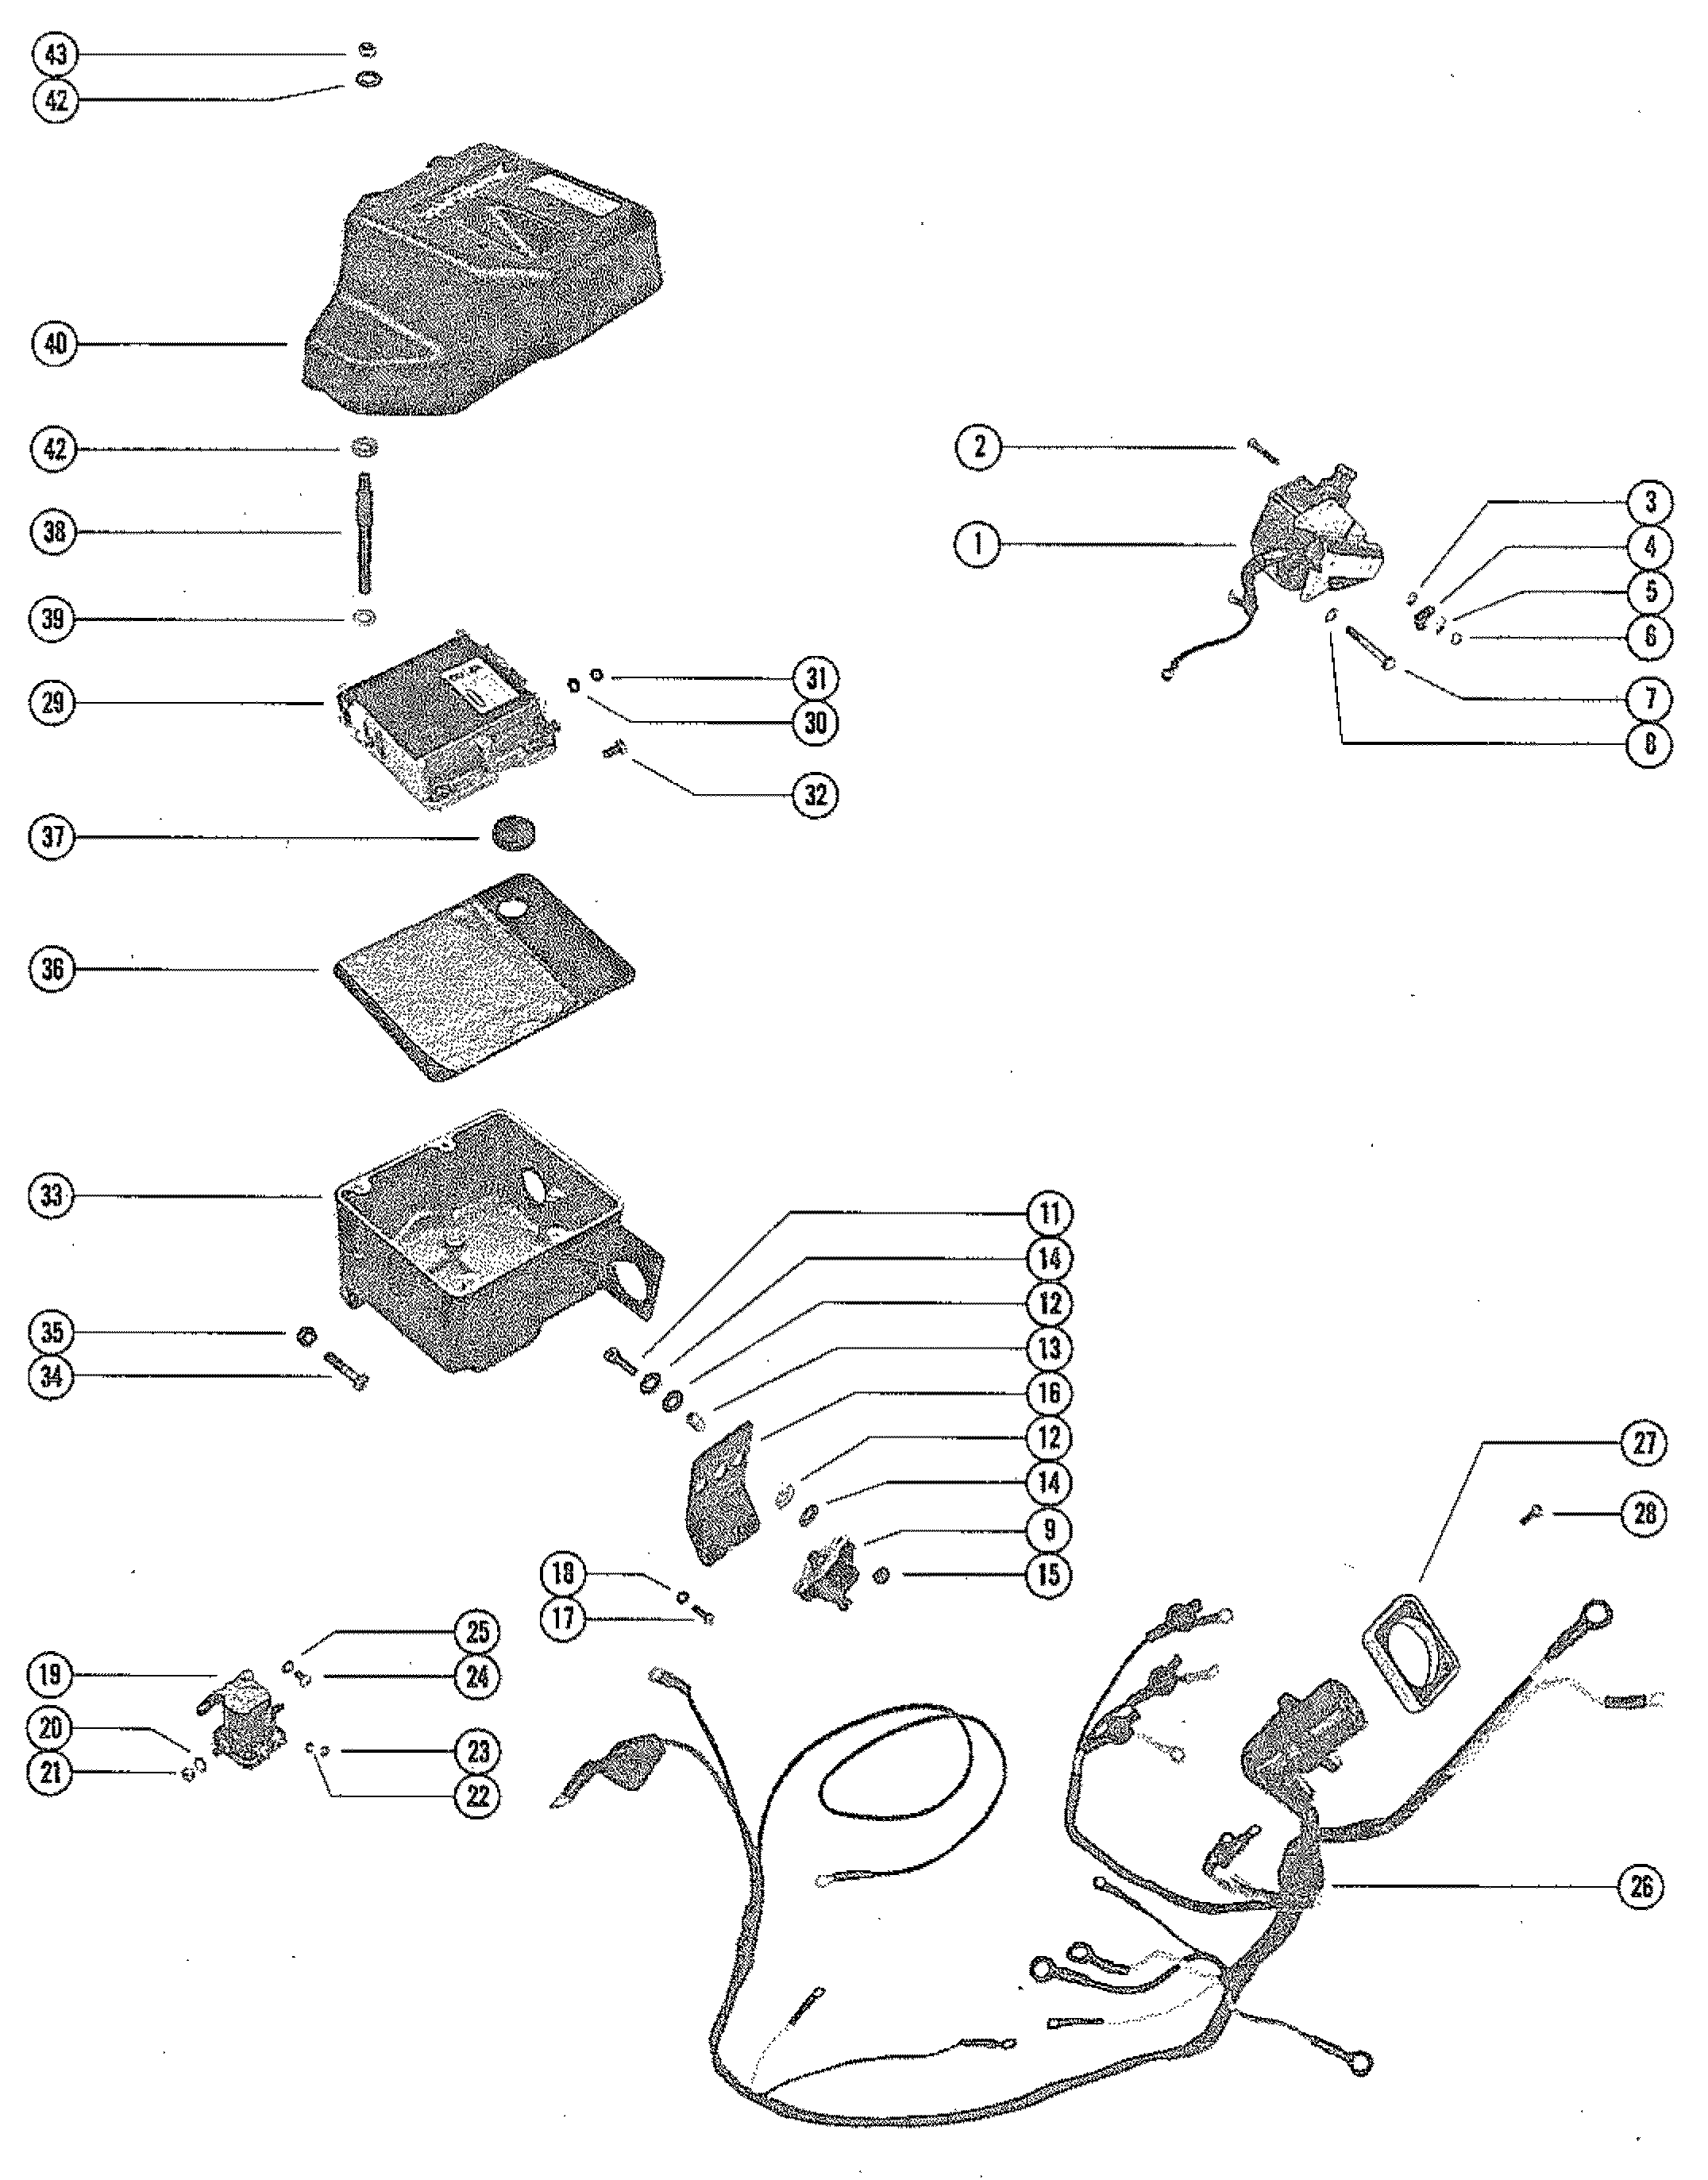 1988 sea ray boat wiring diagram  1988  get free image